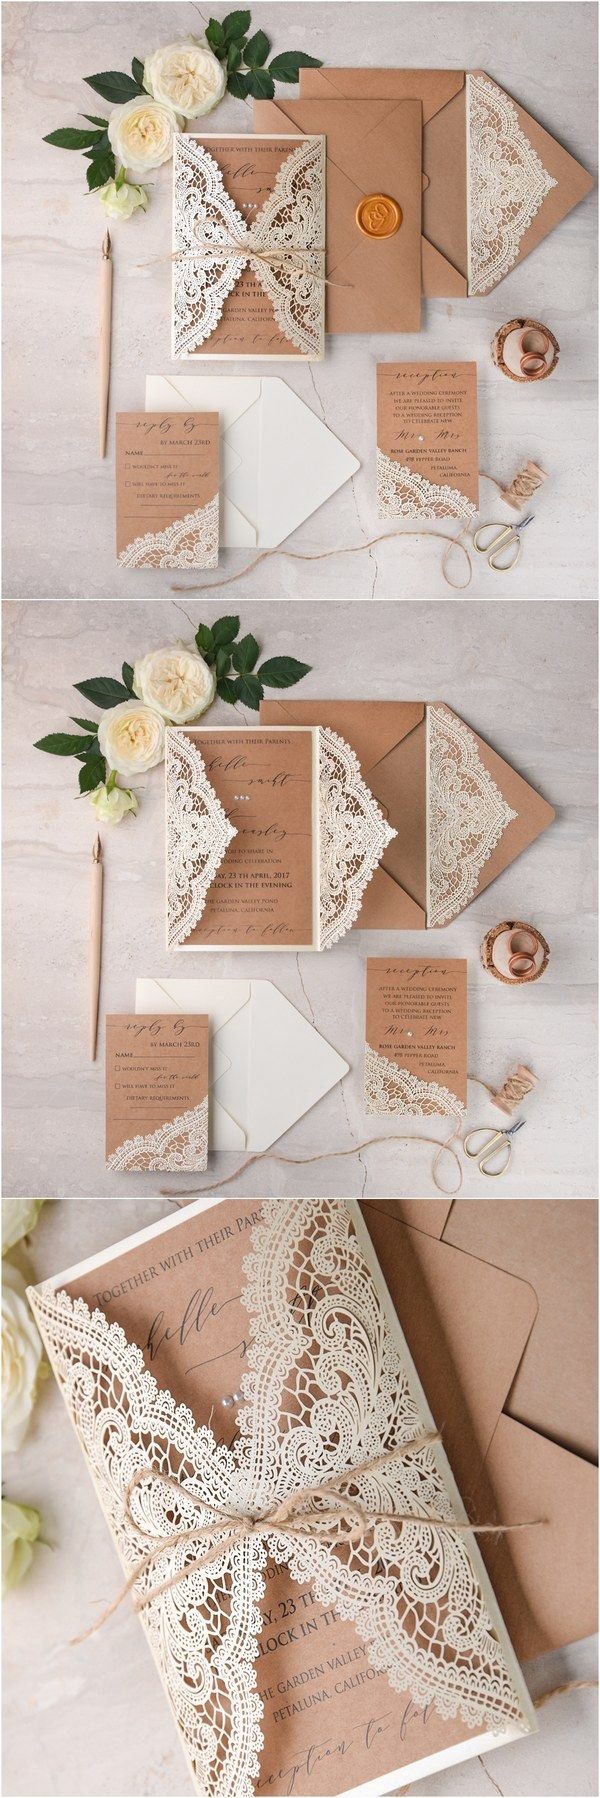 Ivory kraft paper laser cut lace rustic wedding invitations 02lCNz / www.deerpearlflow...